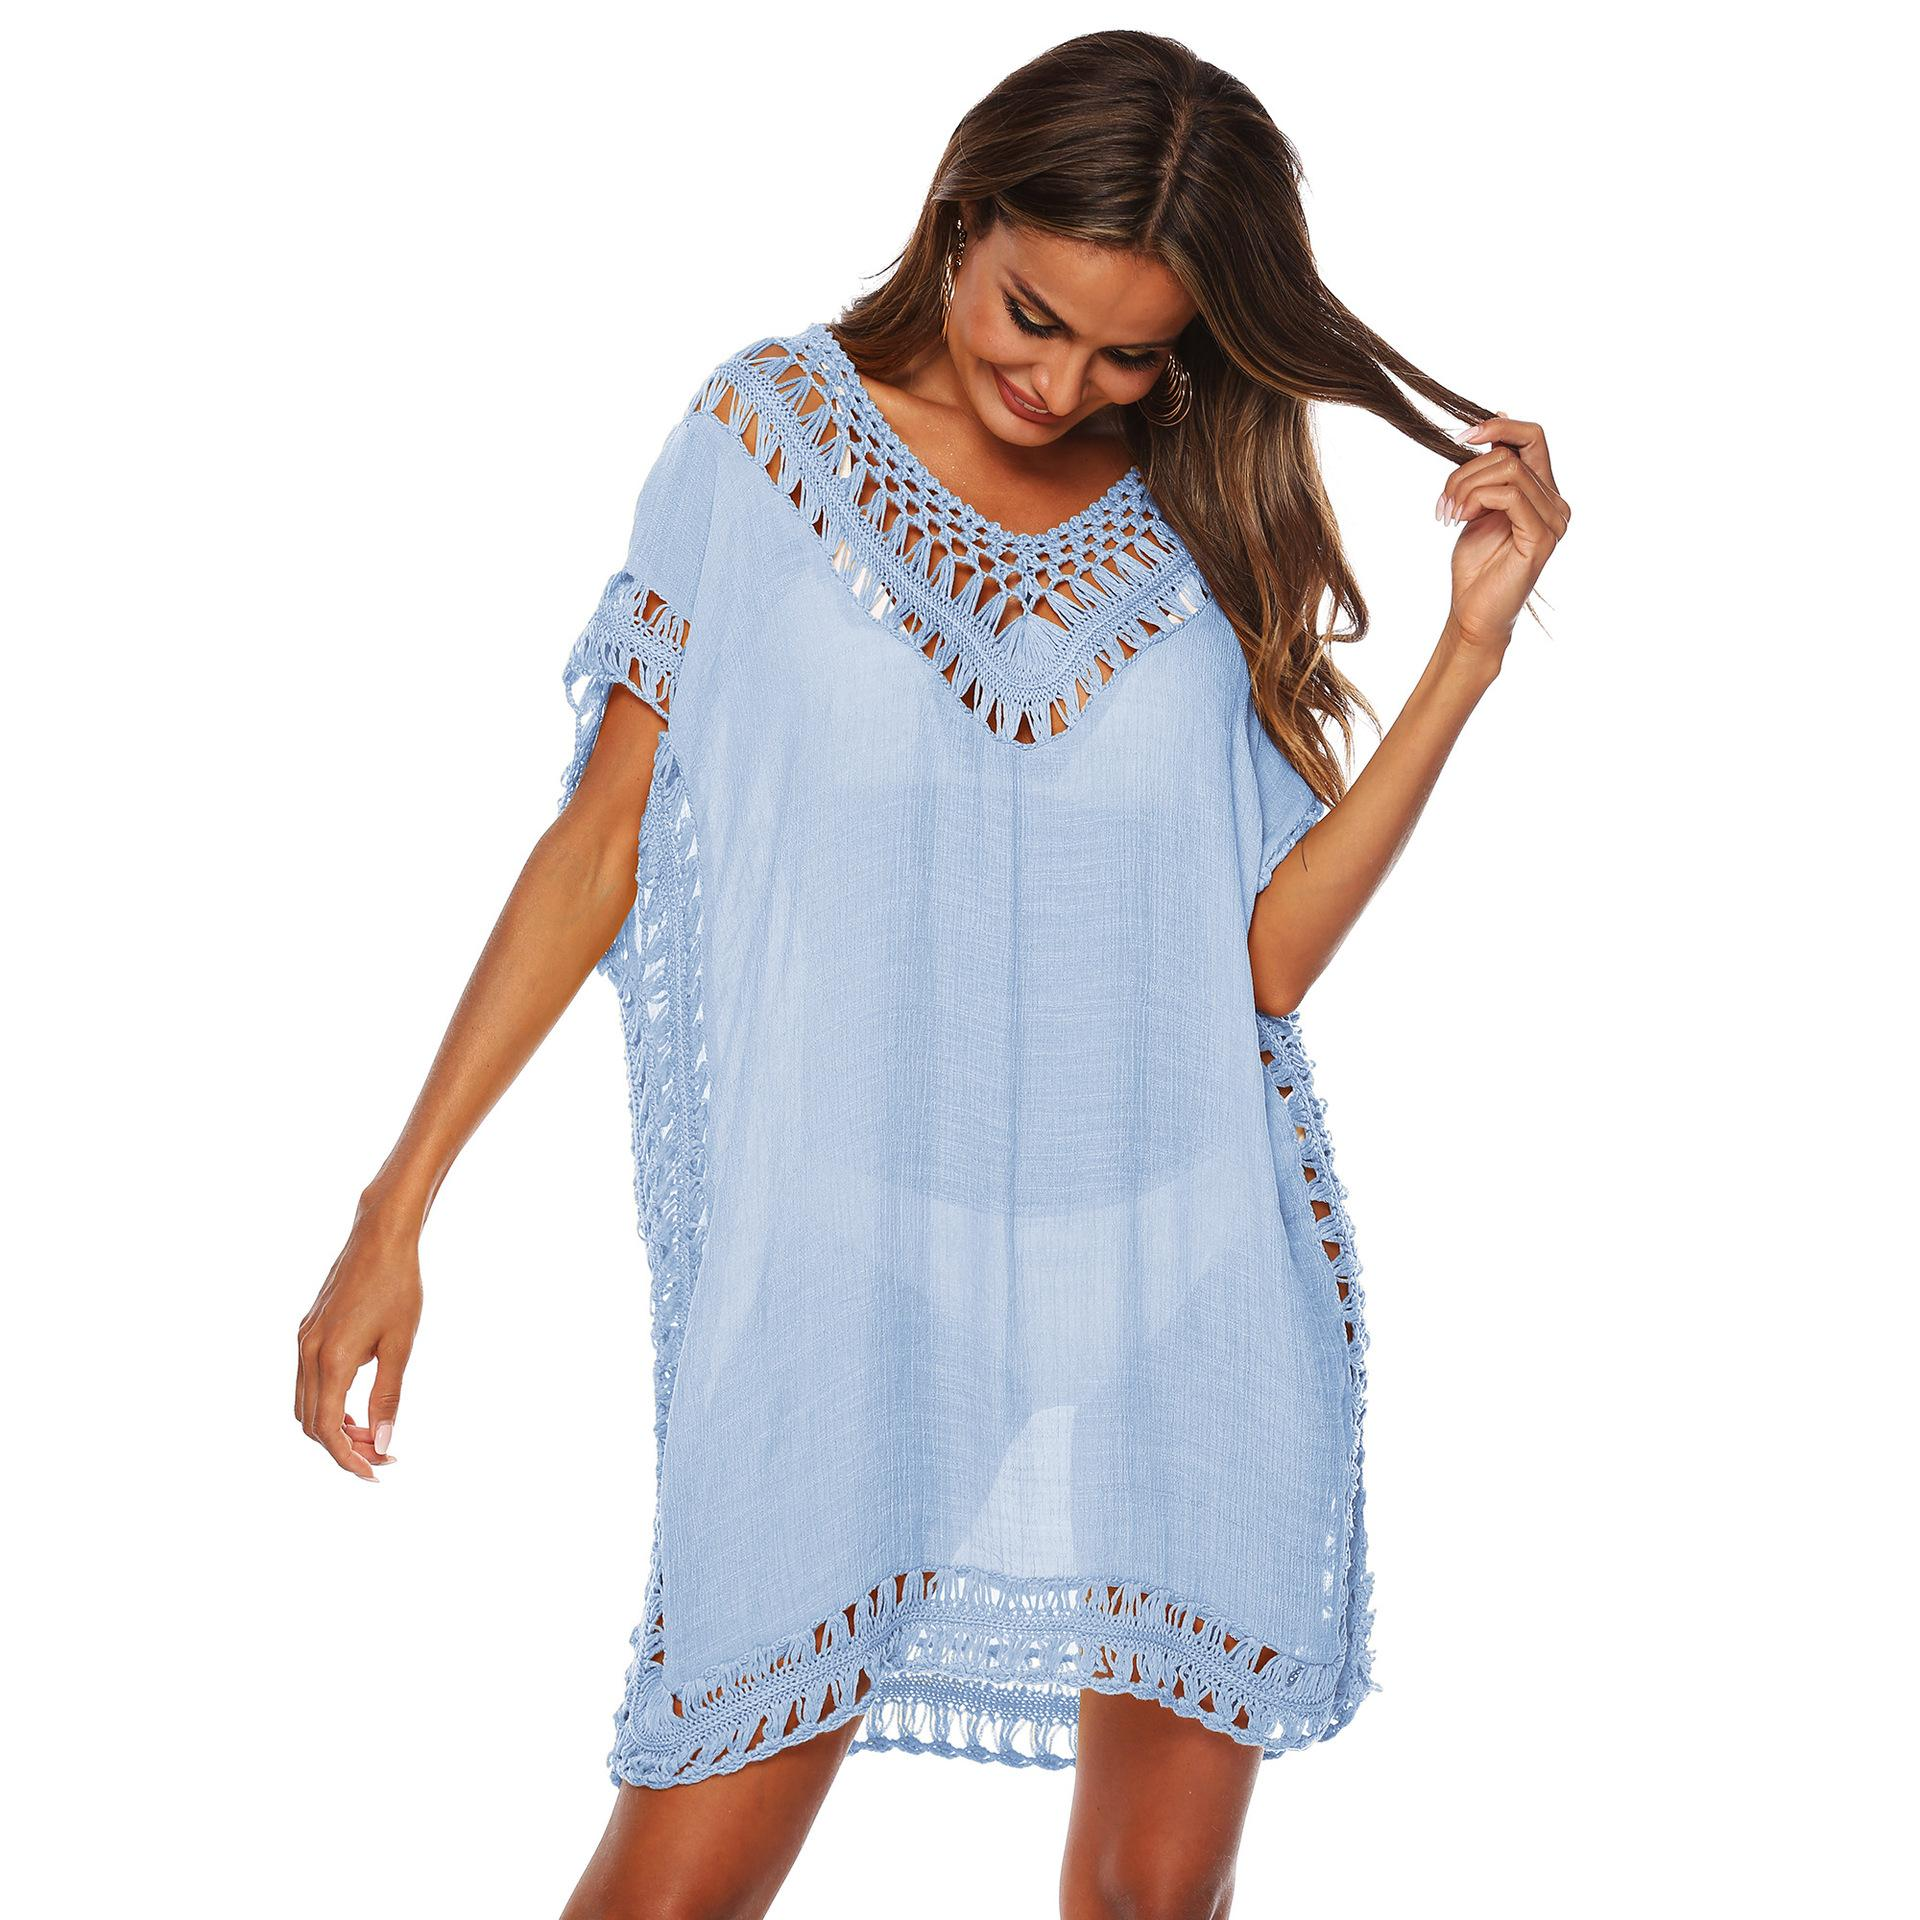 Solide Couleur V-cou Crochet Sexy Brochage creux plage Loose-Fit Bikini Cover-up Jupe